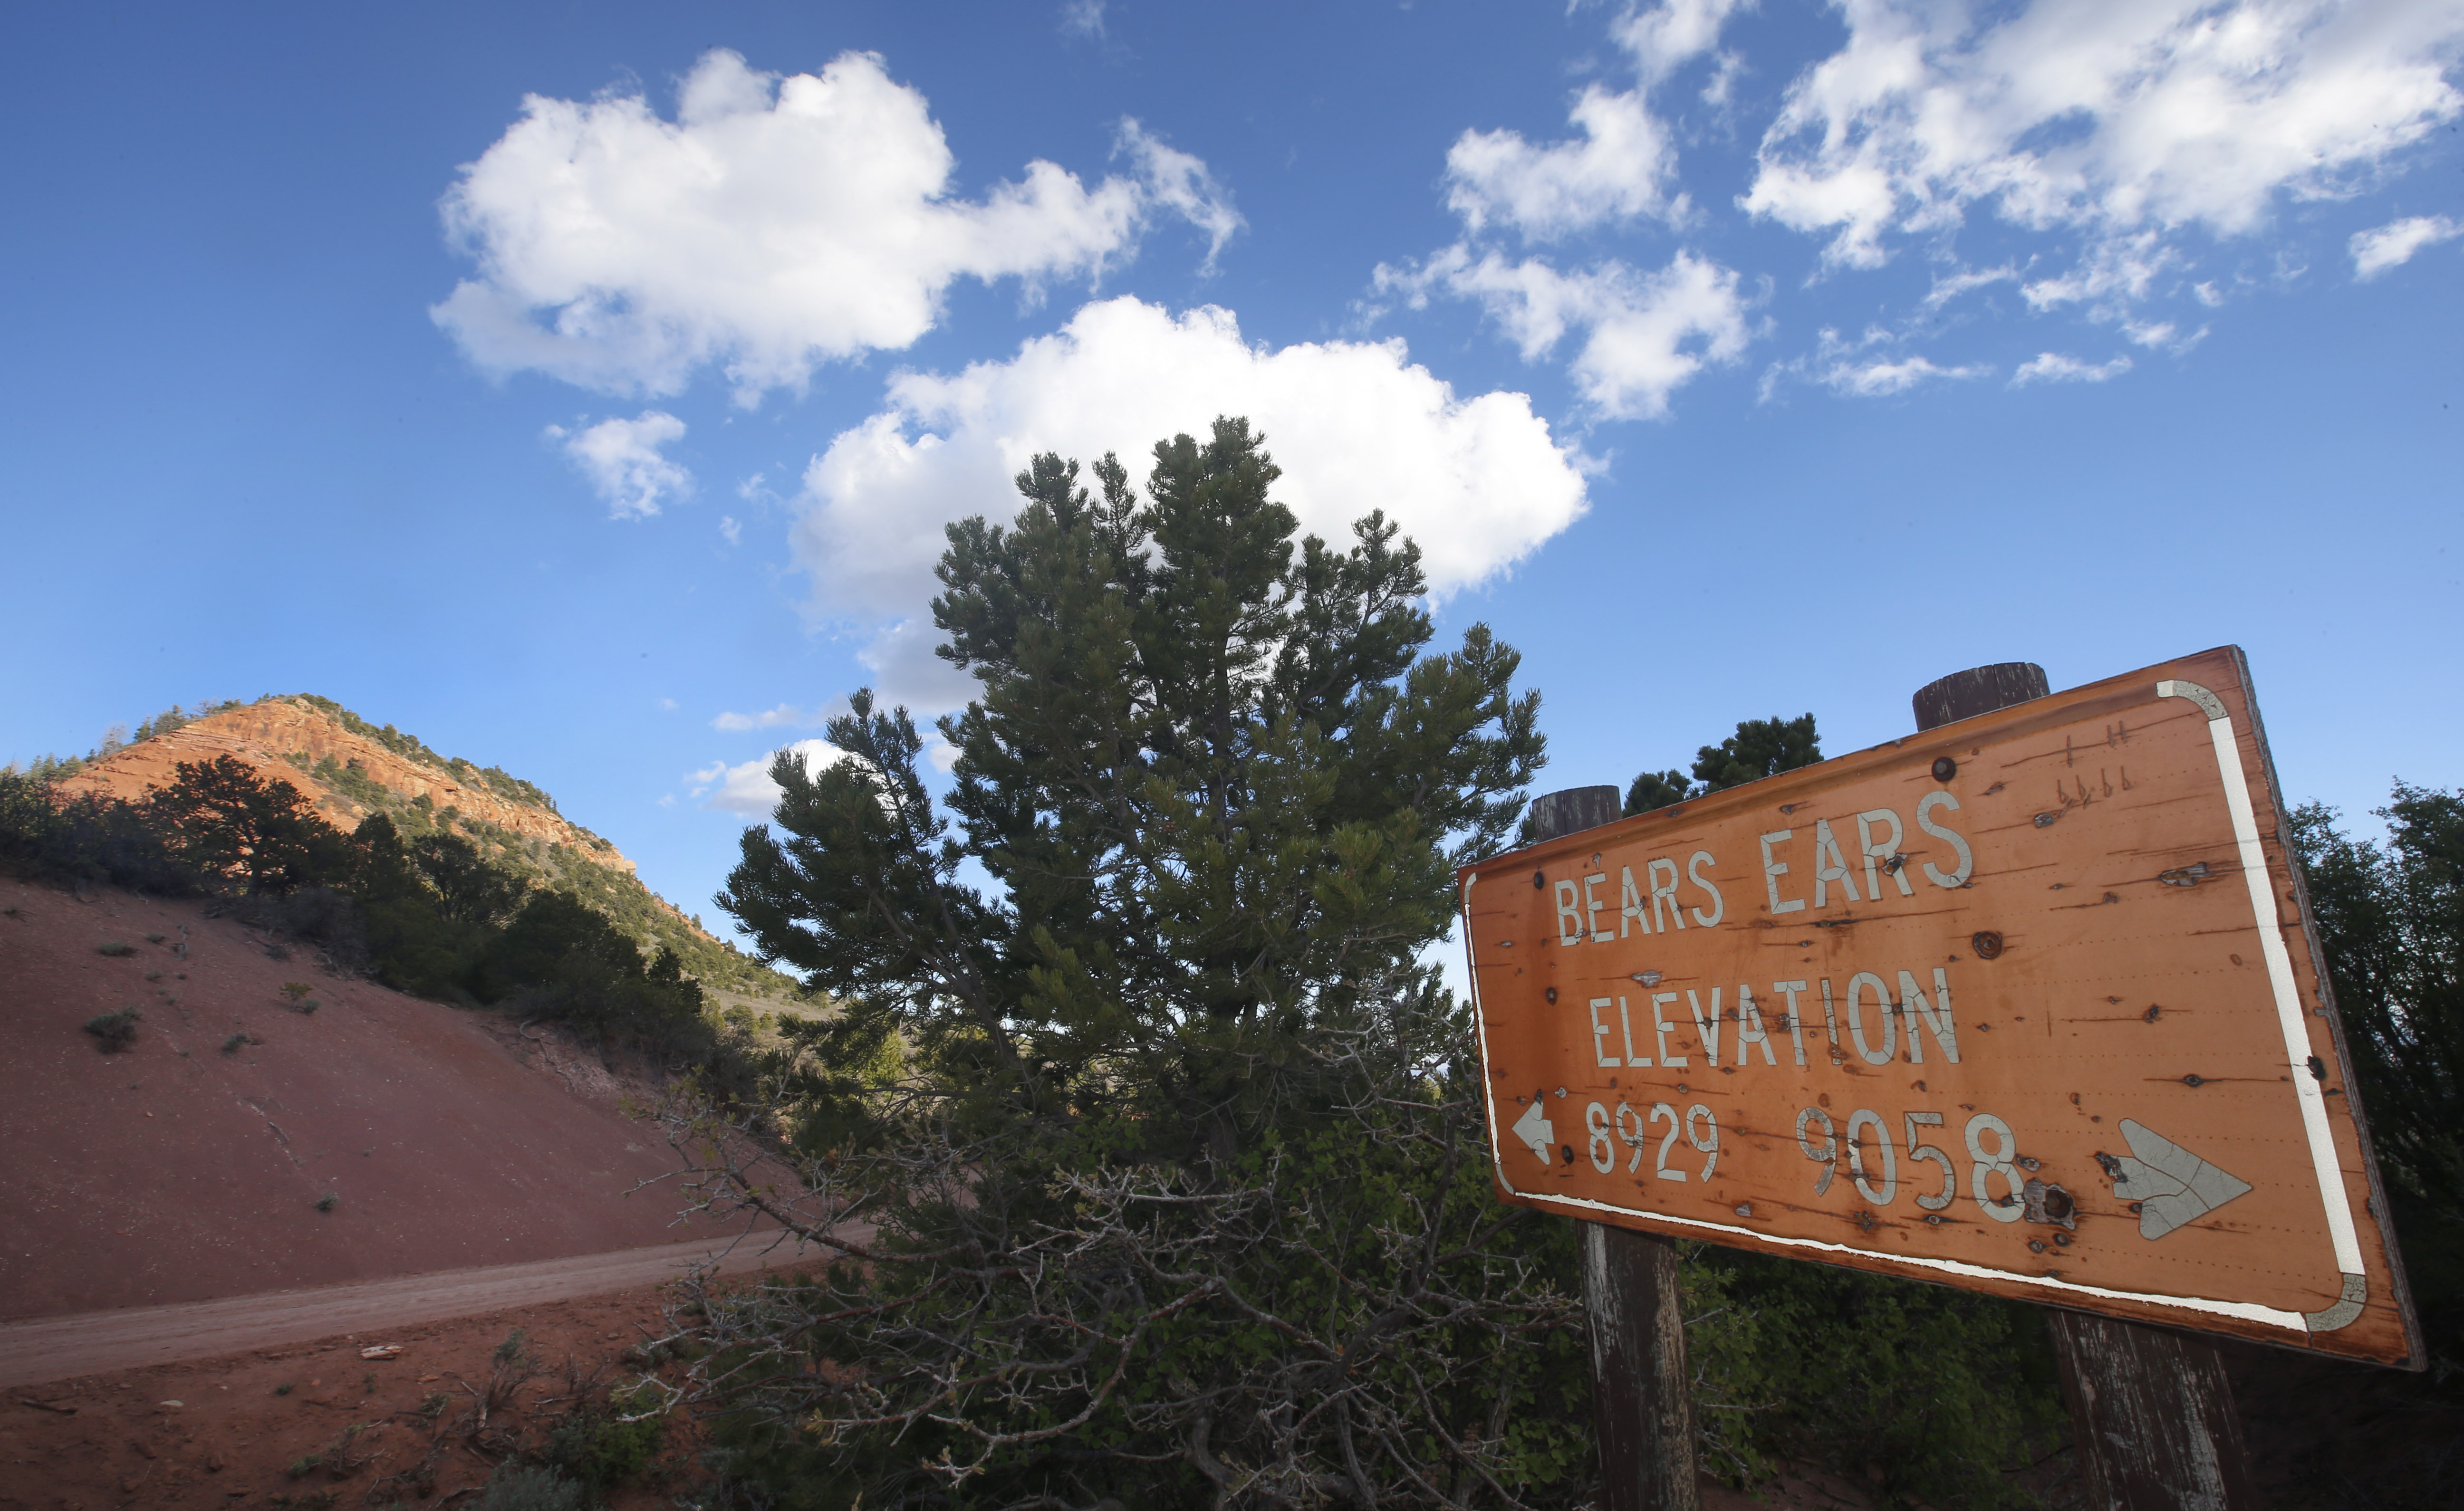 """A sign give the elevation of """"Bears Ears #2"""" in the Bears Ears National Monument on May 11, 2017 outside Blanding, Utah. (Photo by George Frey/Getty Images)"""